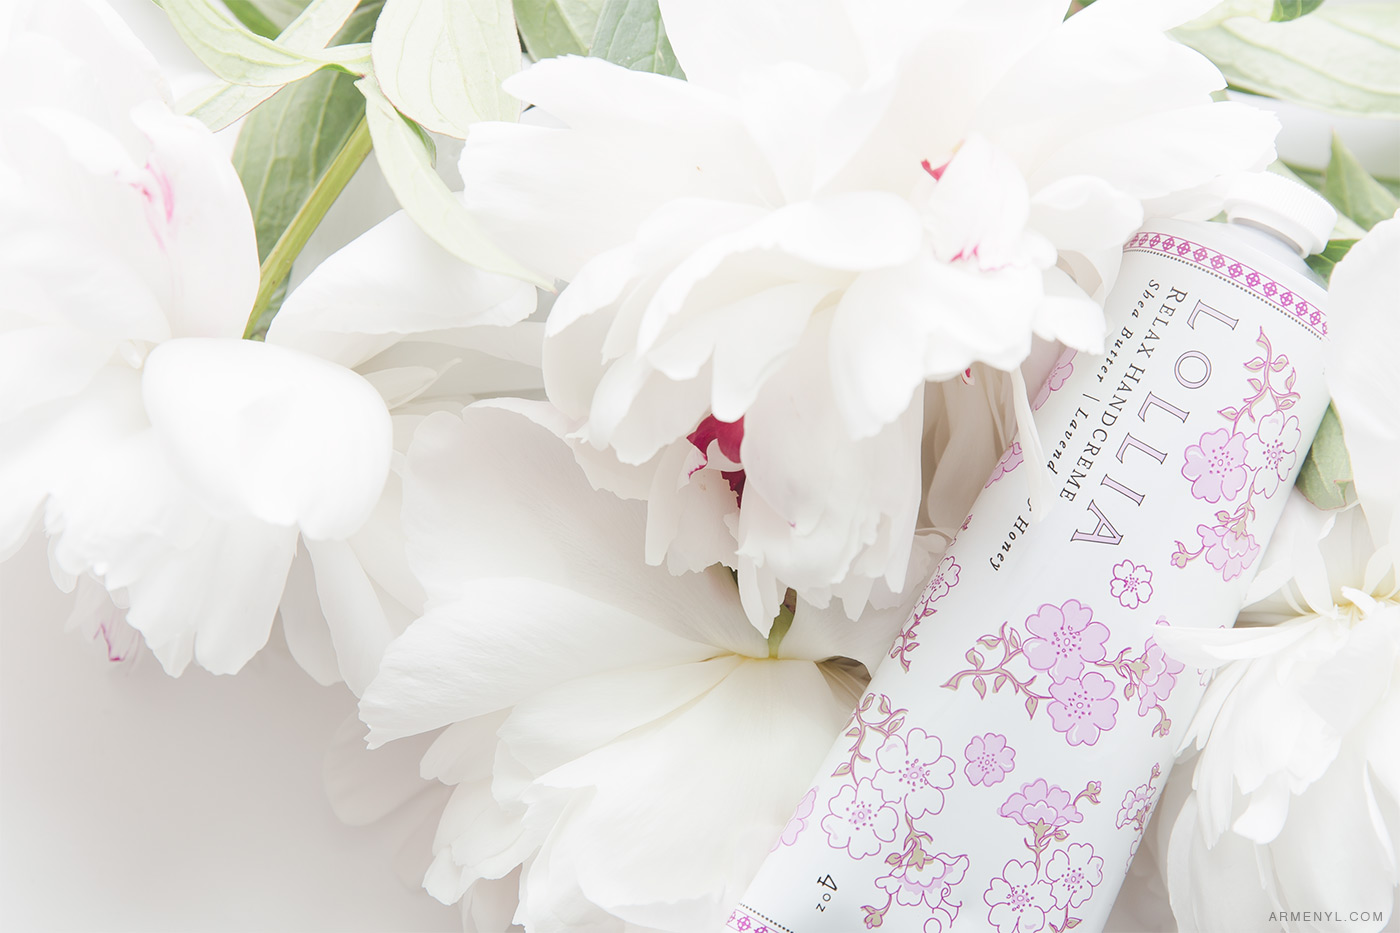 Beauty Favorites / Gift Guide Lollia HandCreme and white peonies Photo by Armenyl.com